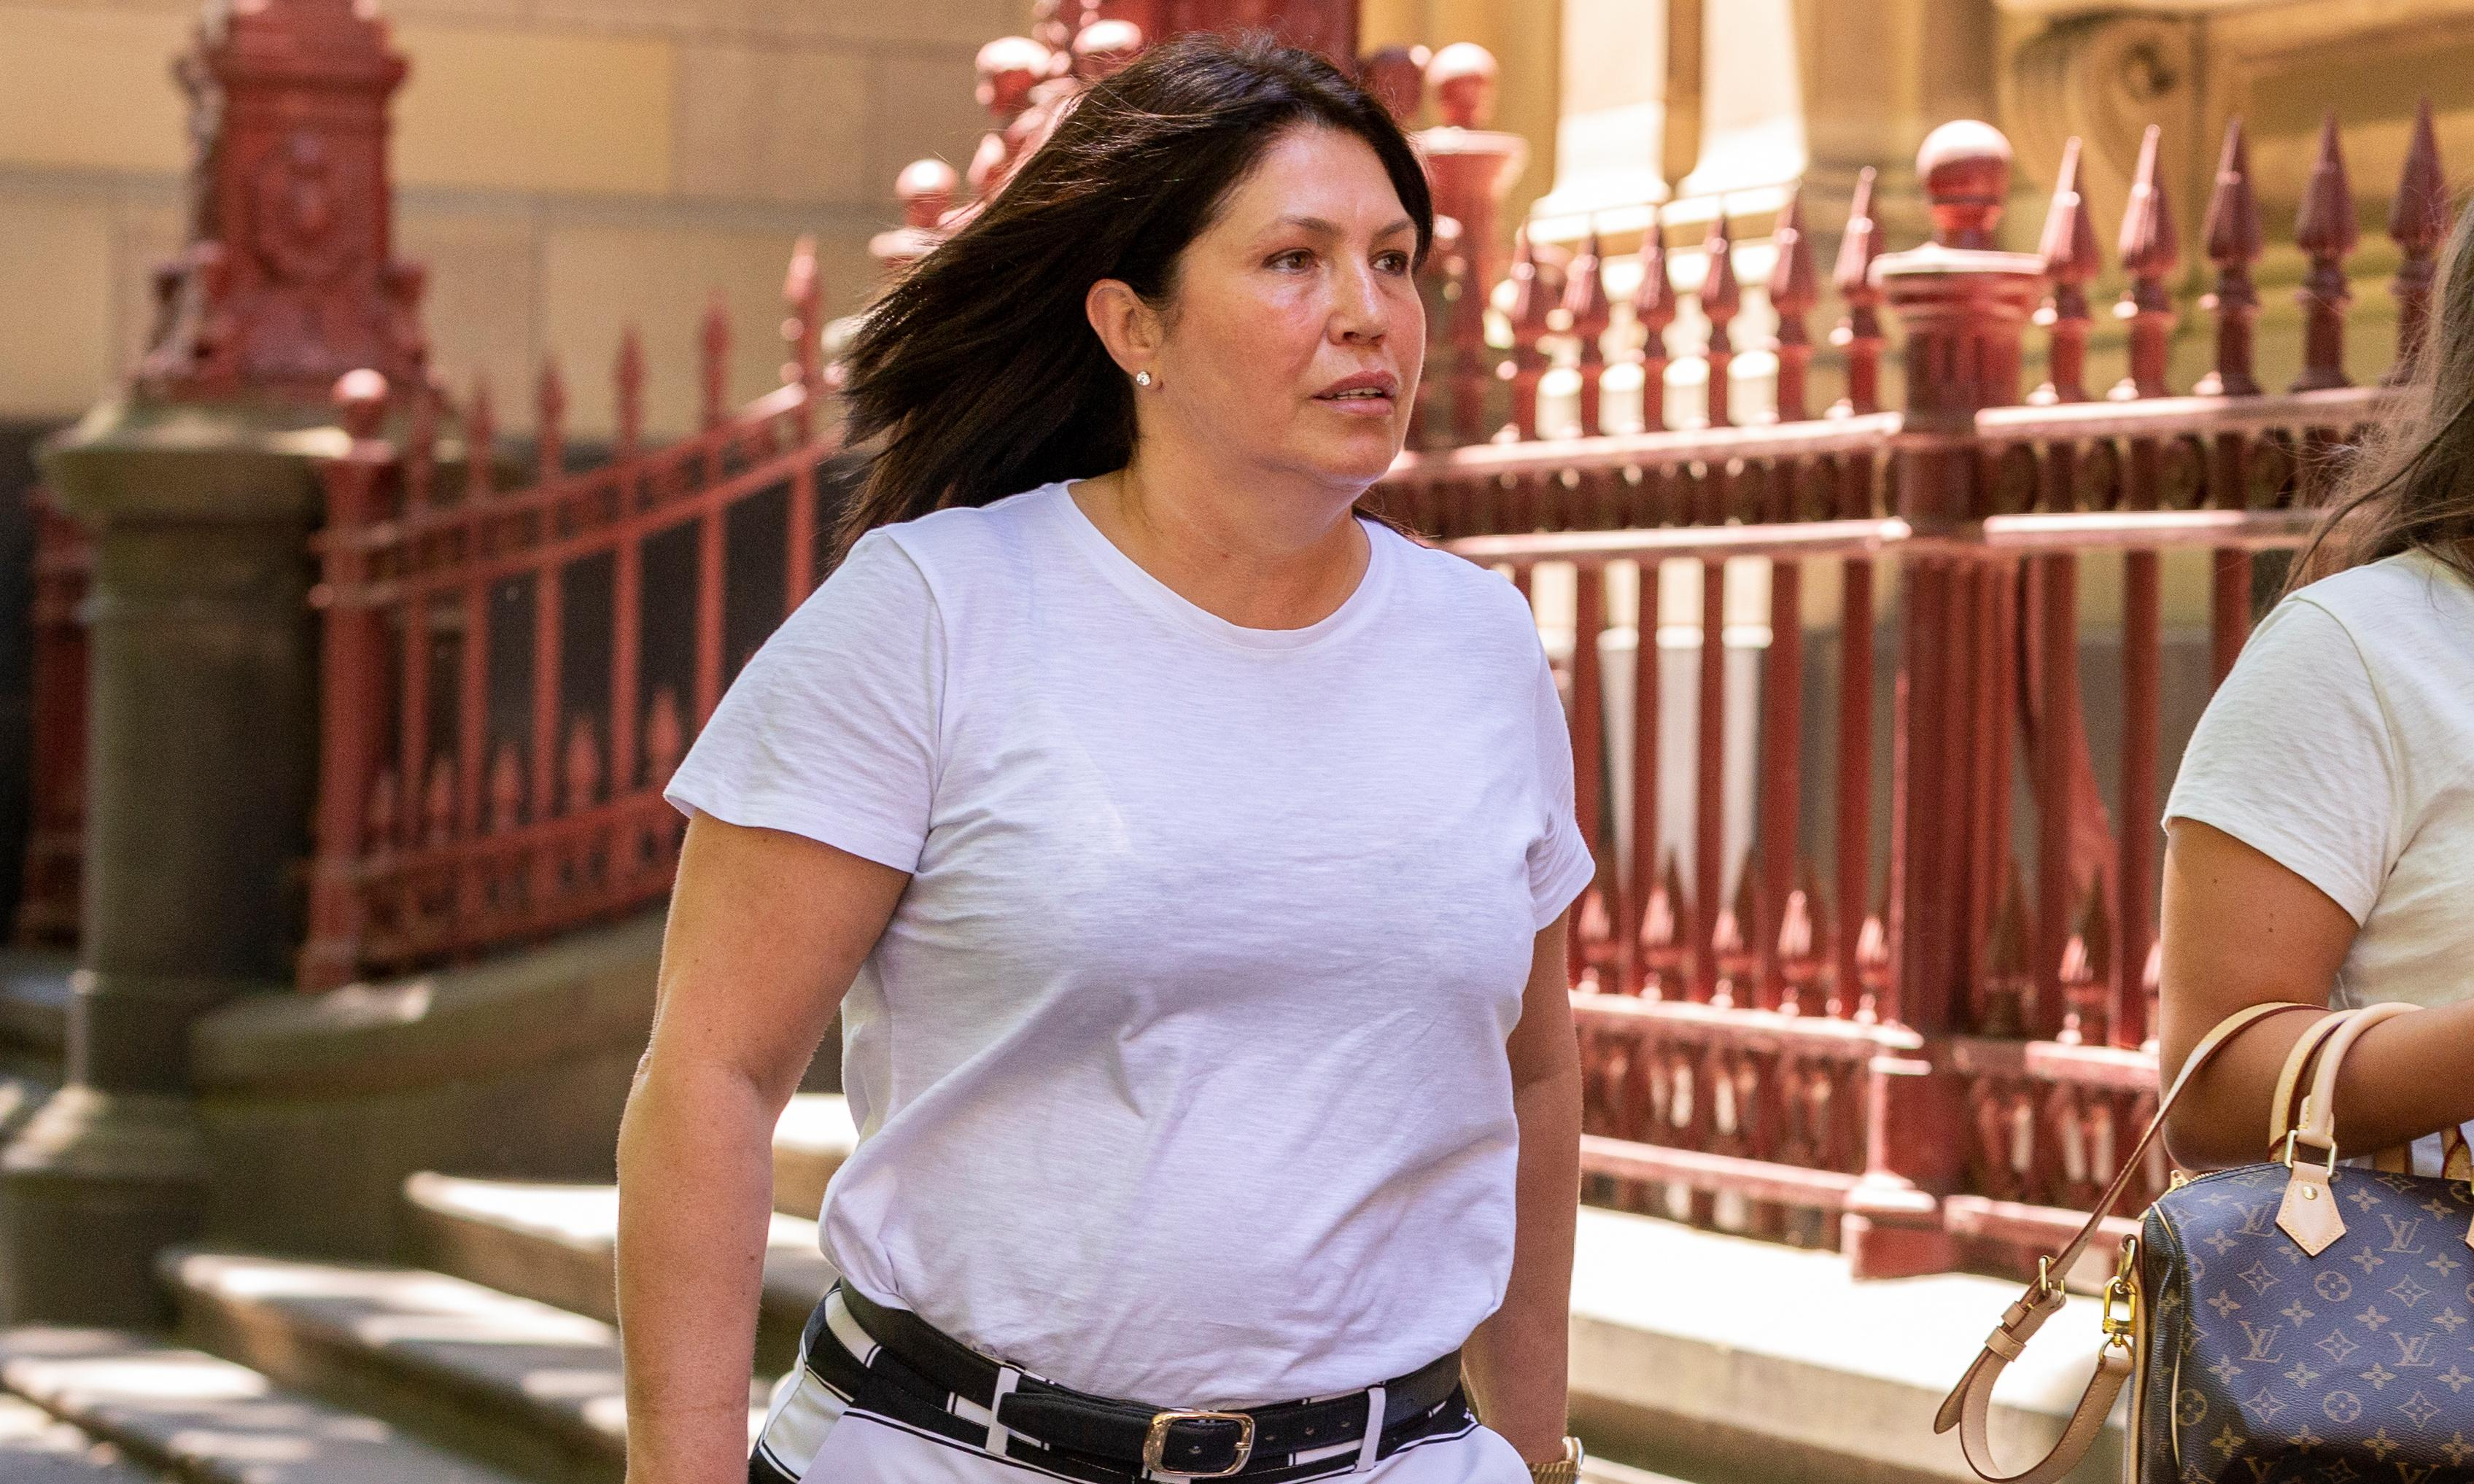 Gangland widow Roberta Williams arrested on allegations of kidnapping and extortion